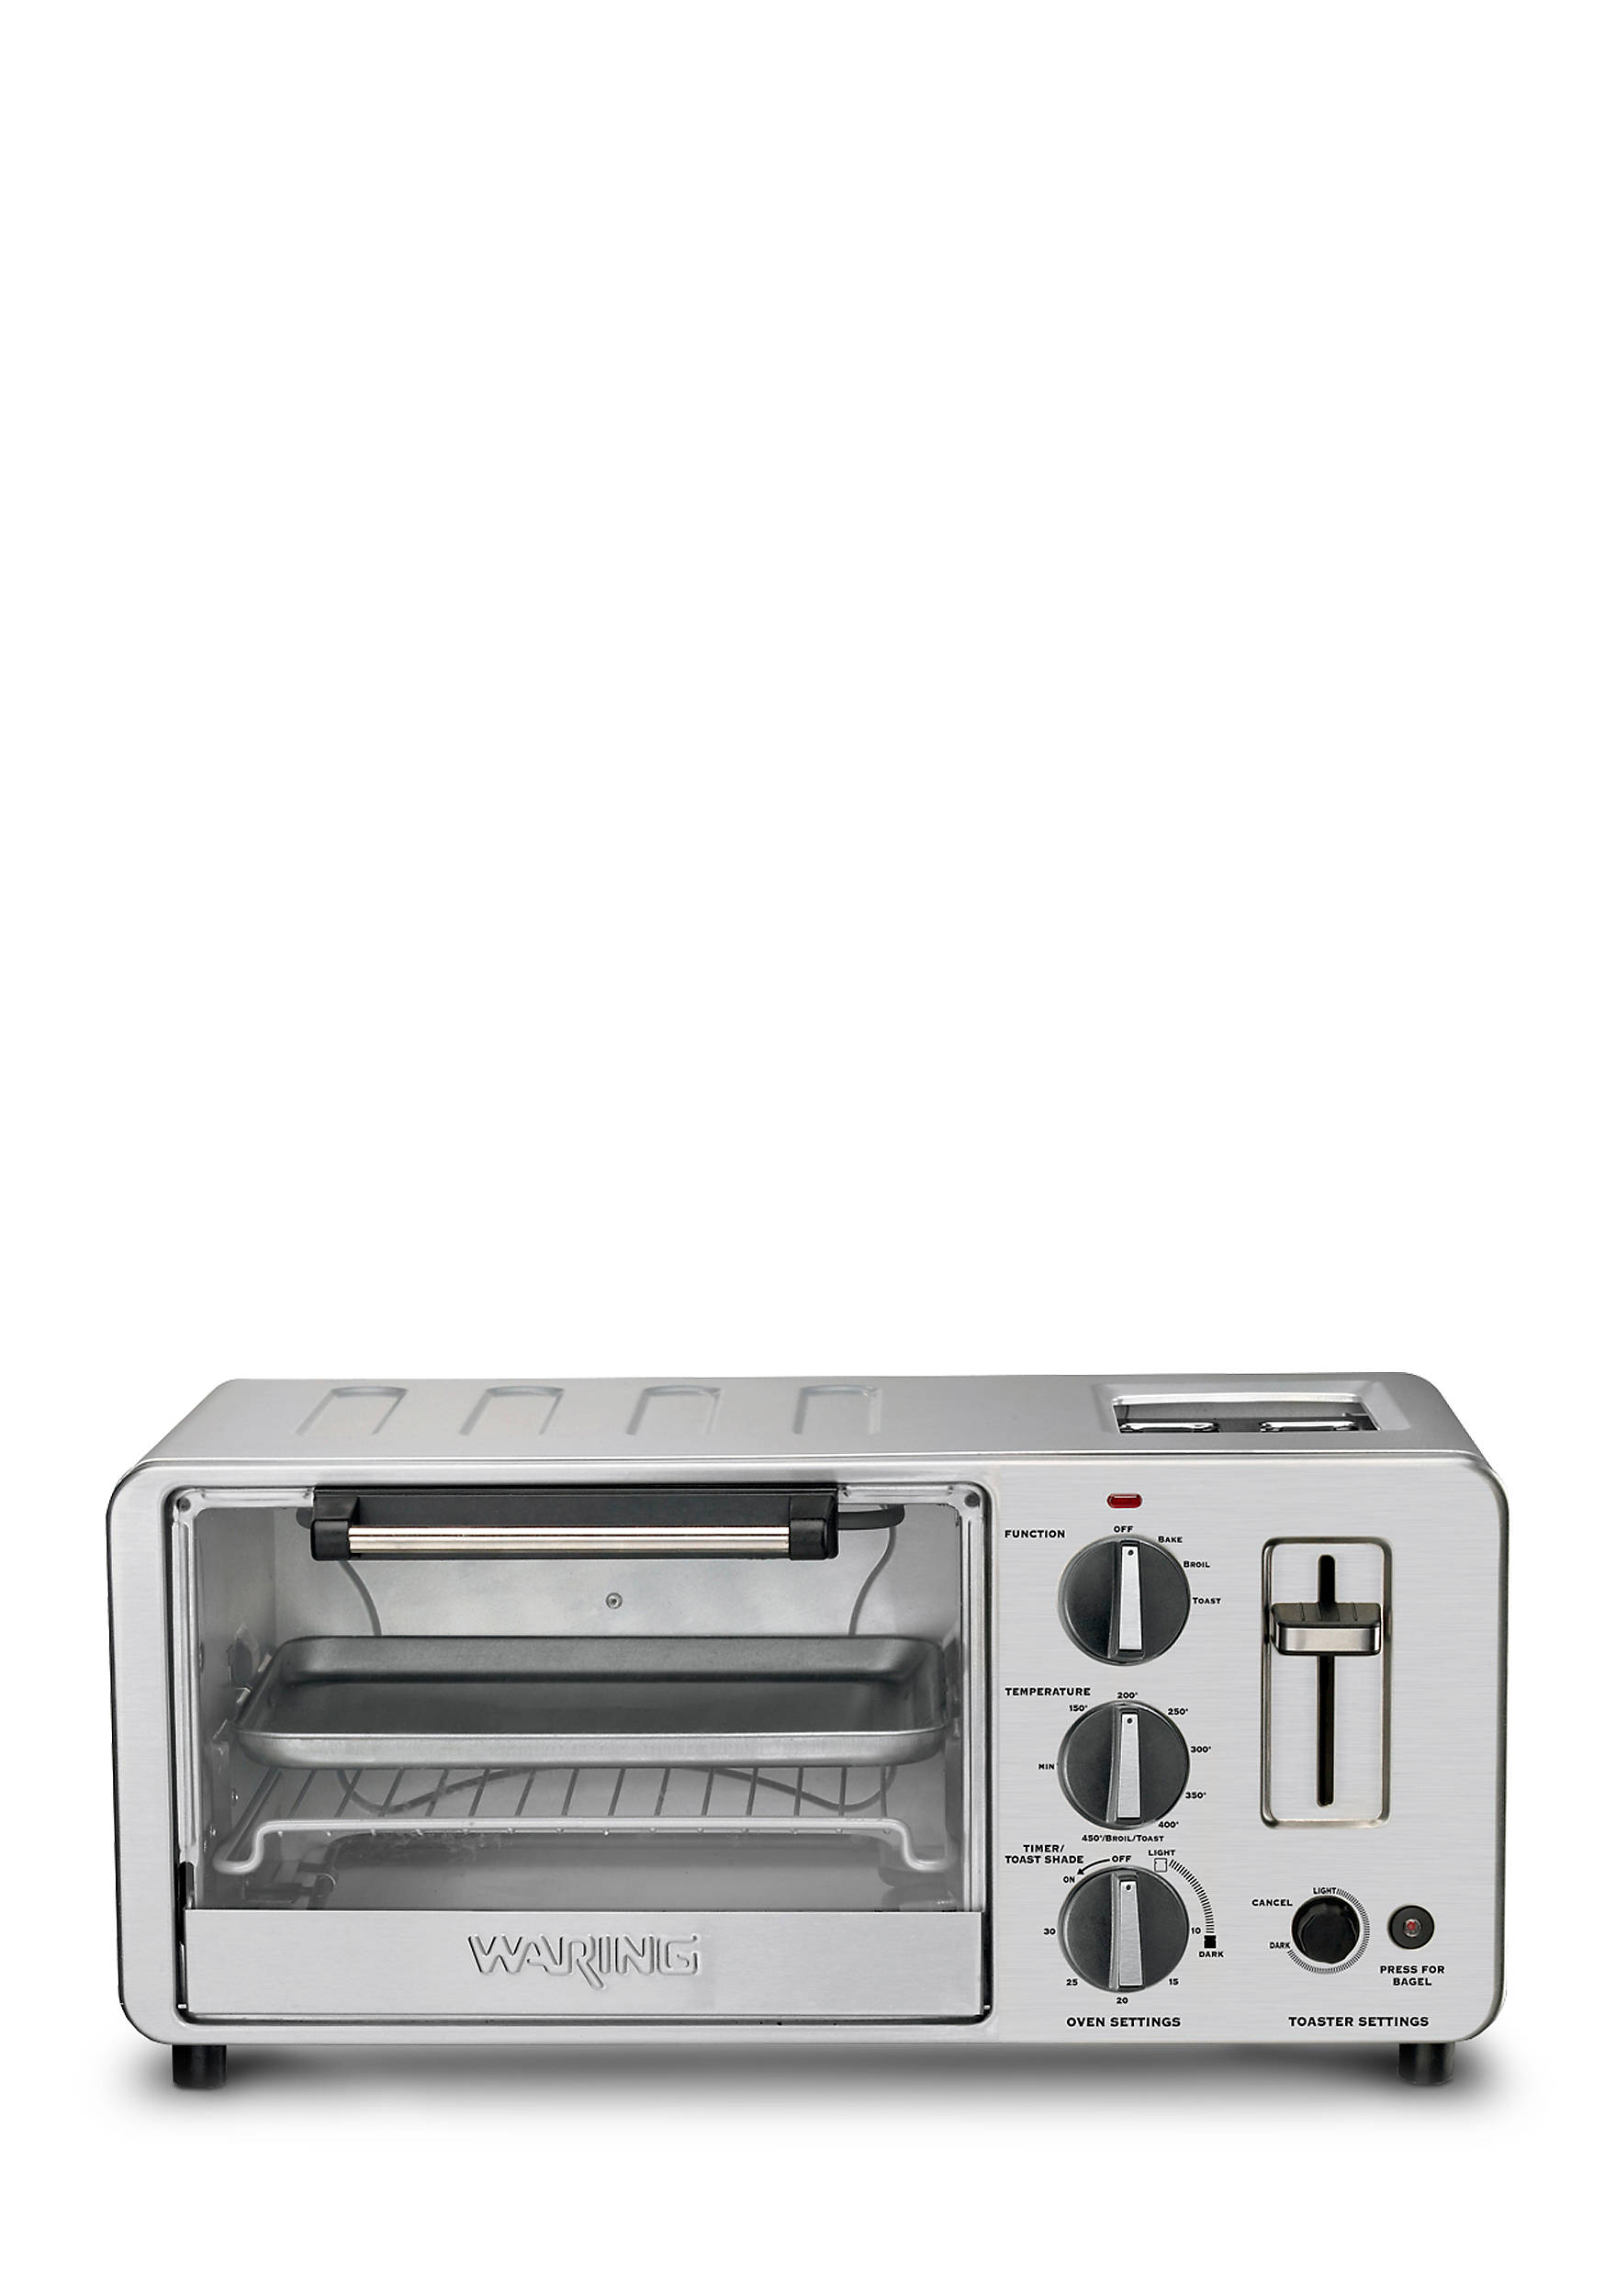 slice toasting countertop stainless c reviews and rack waring toaster includes oven amazon steel a ljb convection black blac broil com single pan reviewa bake decker